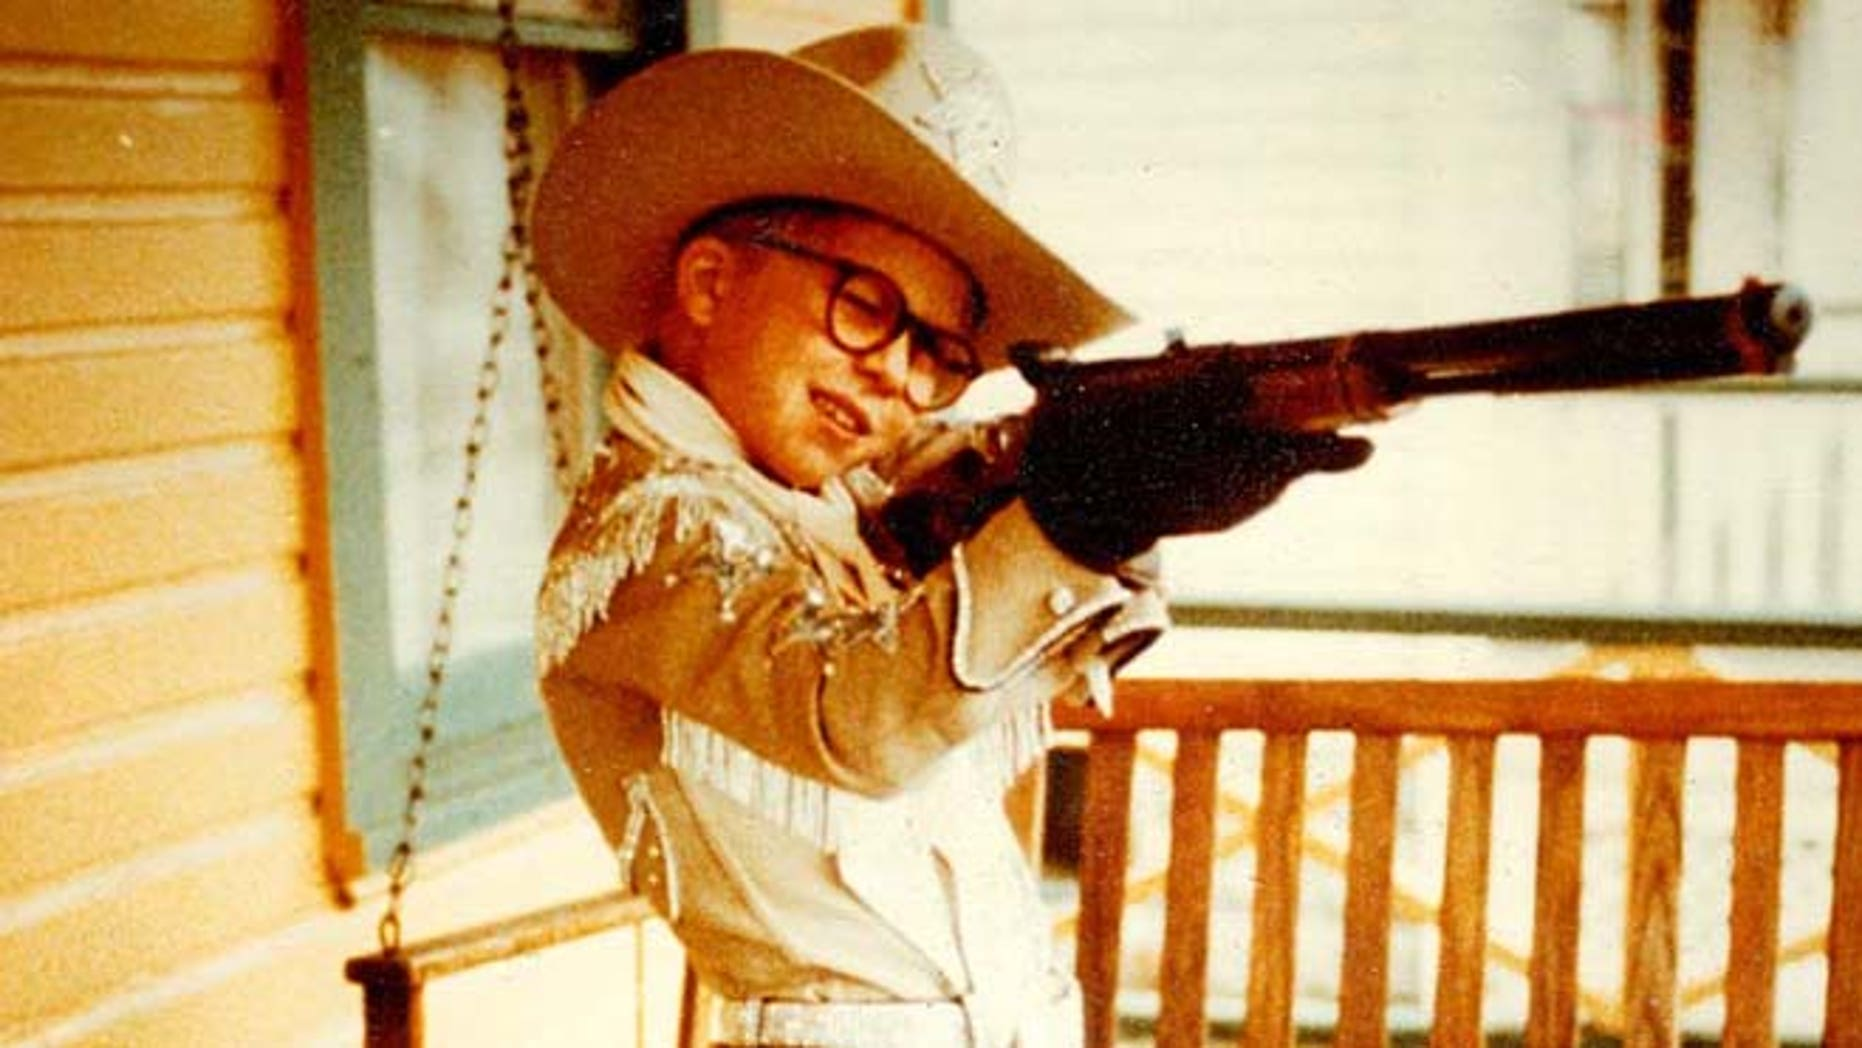 the red ryder bb gun was made famous in the 1983 film a christmas story